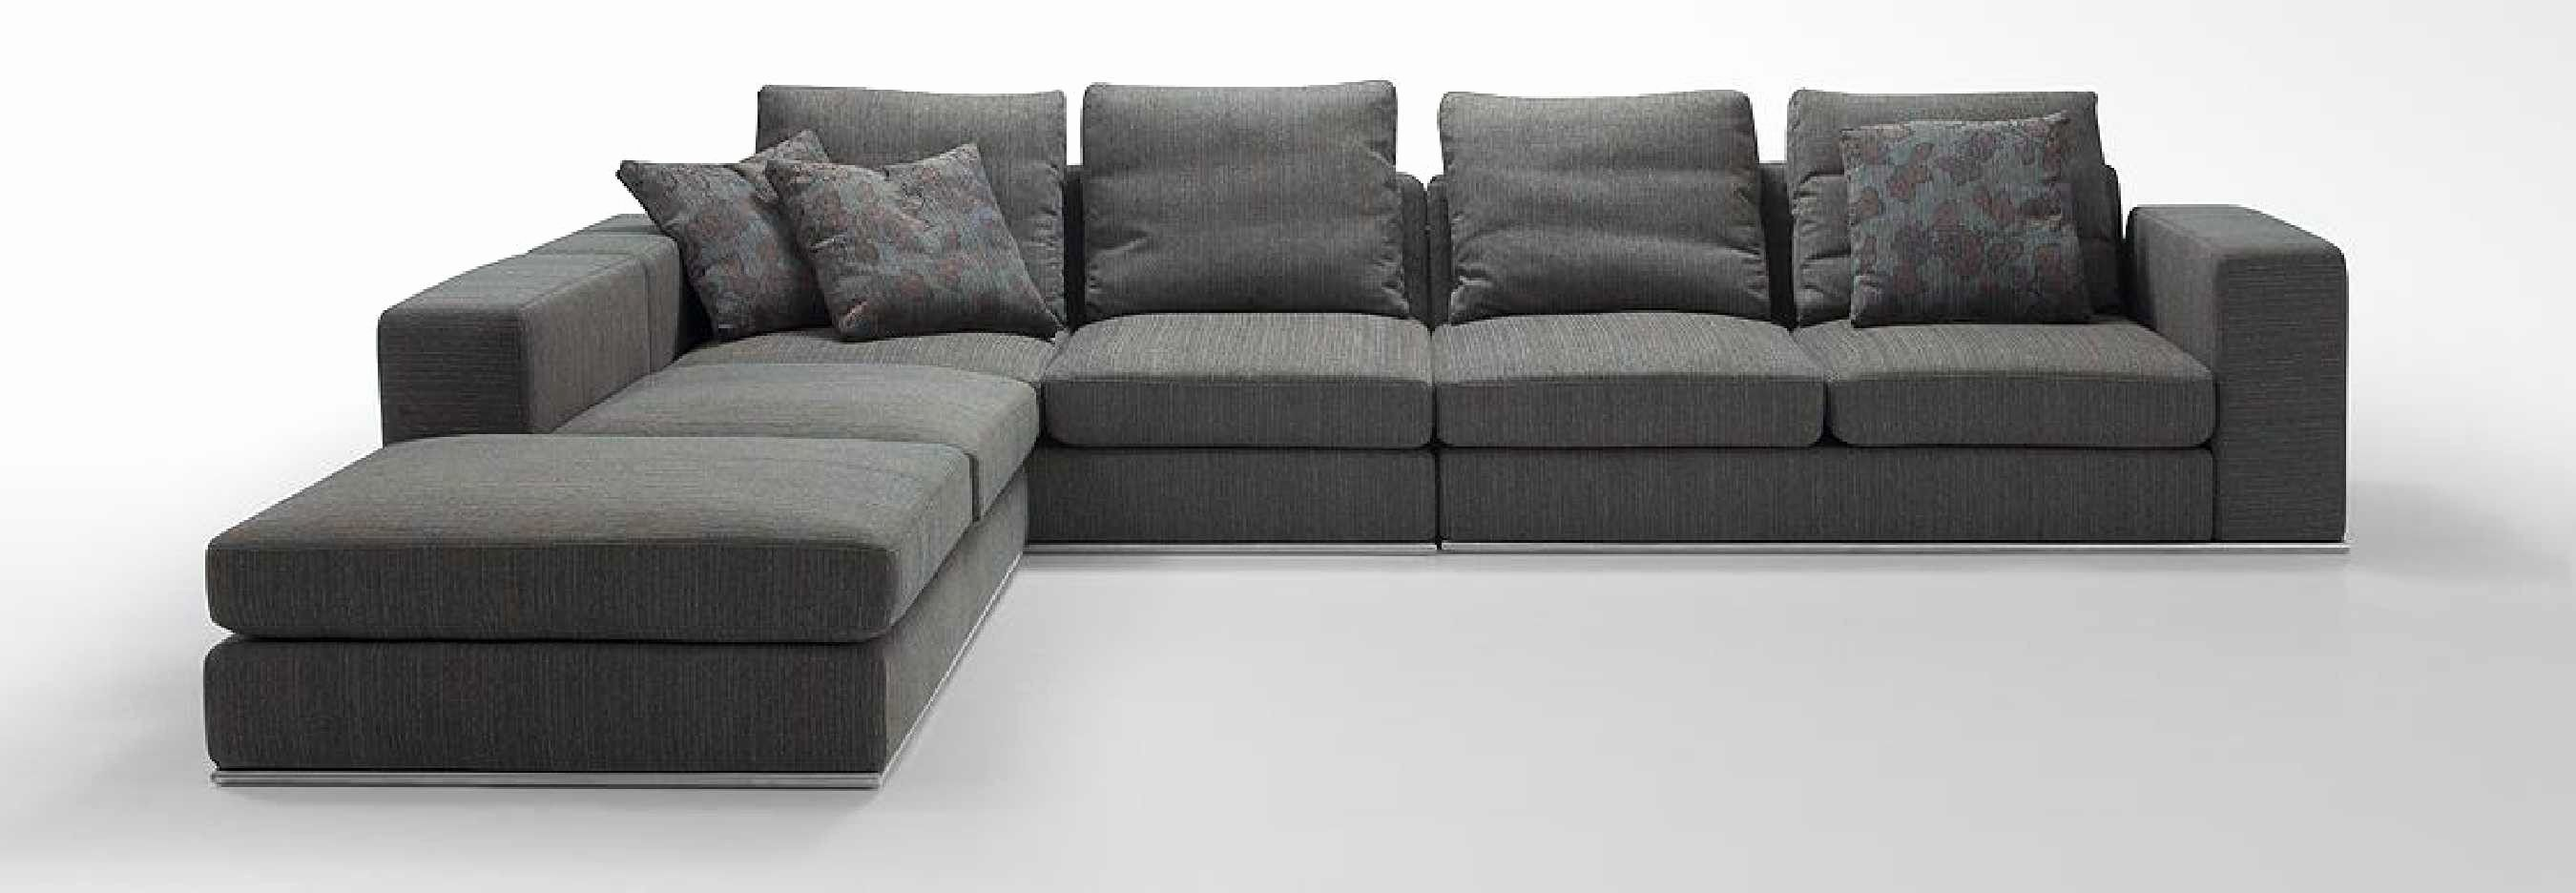 Inspirational Modern Grey Sectional Sofa Pictures Modern Grey Sectional Sofa Beautiful Sofas Wonder L Shaped Sofa Bed Grey Sectional Sofa Modern Sofa Sectional